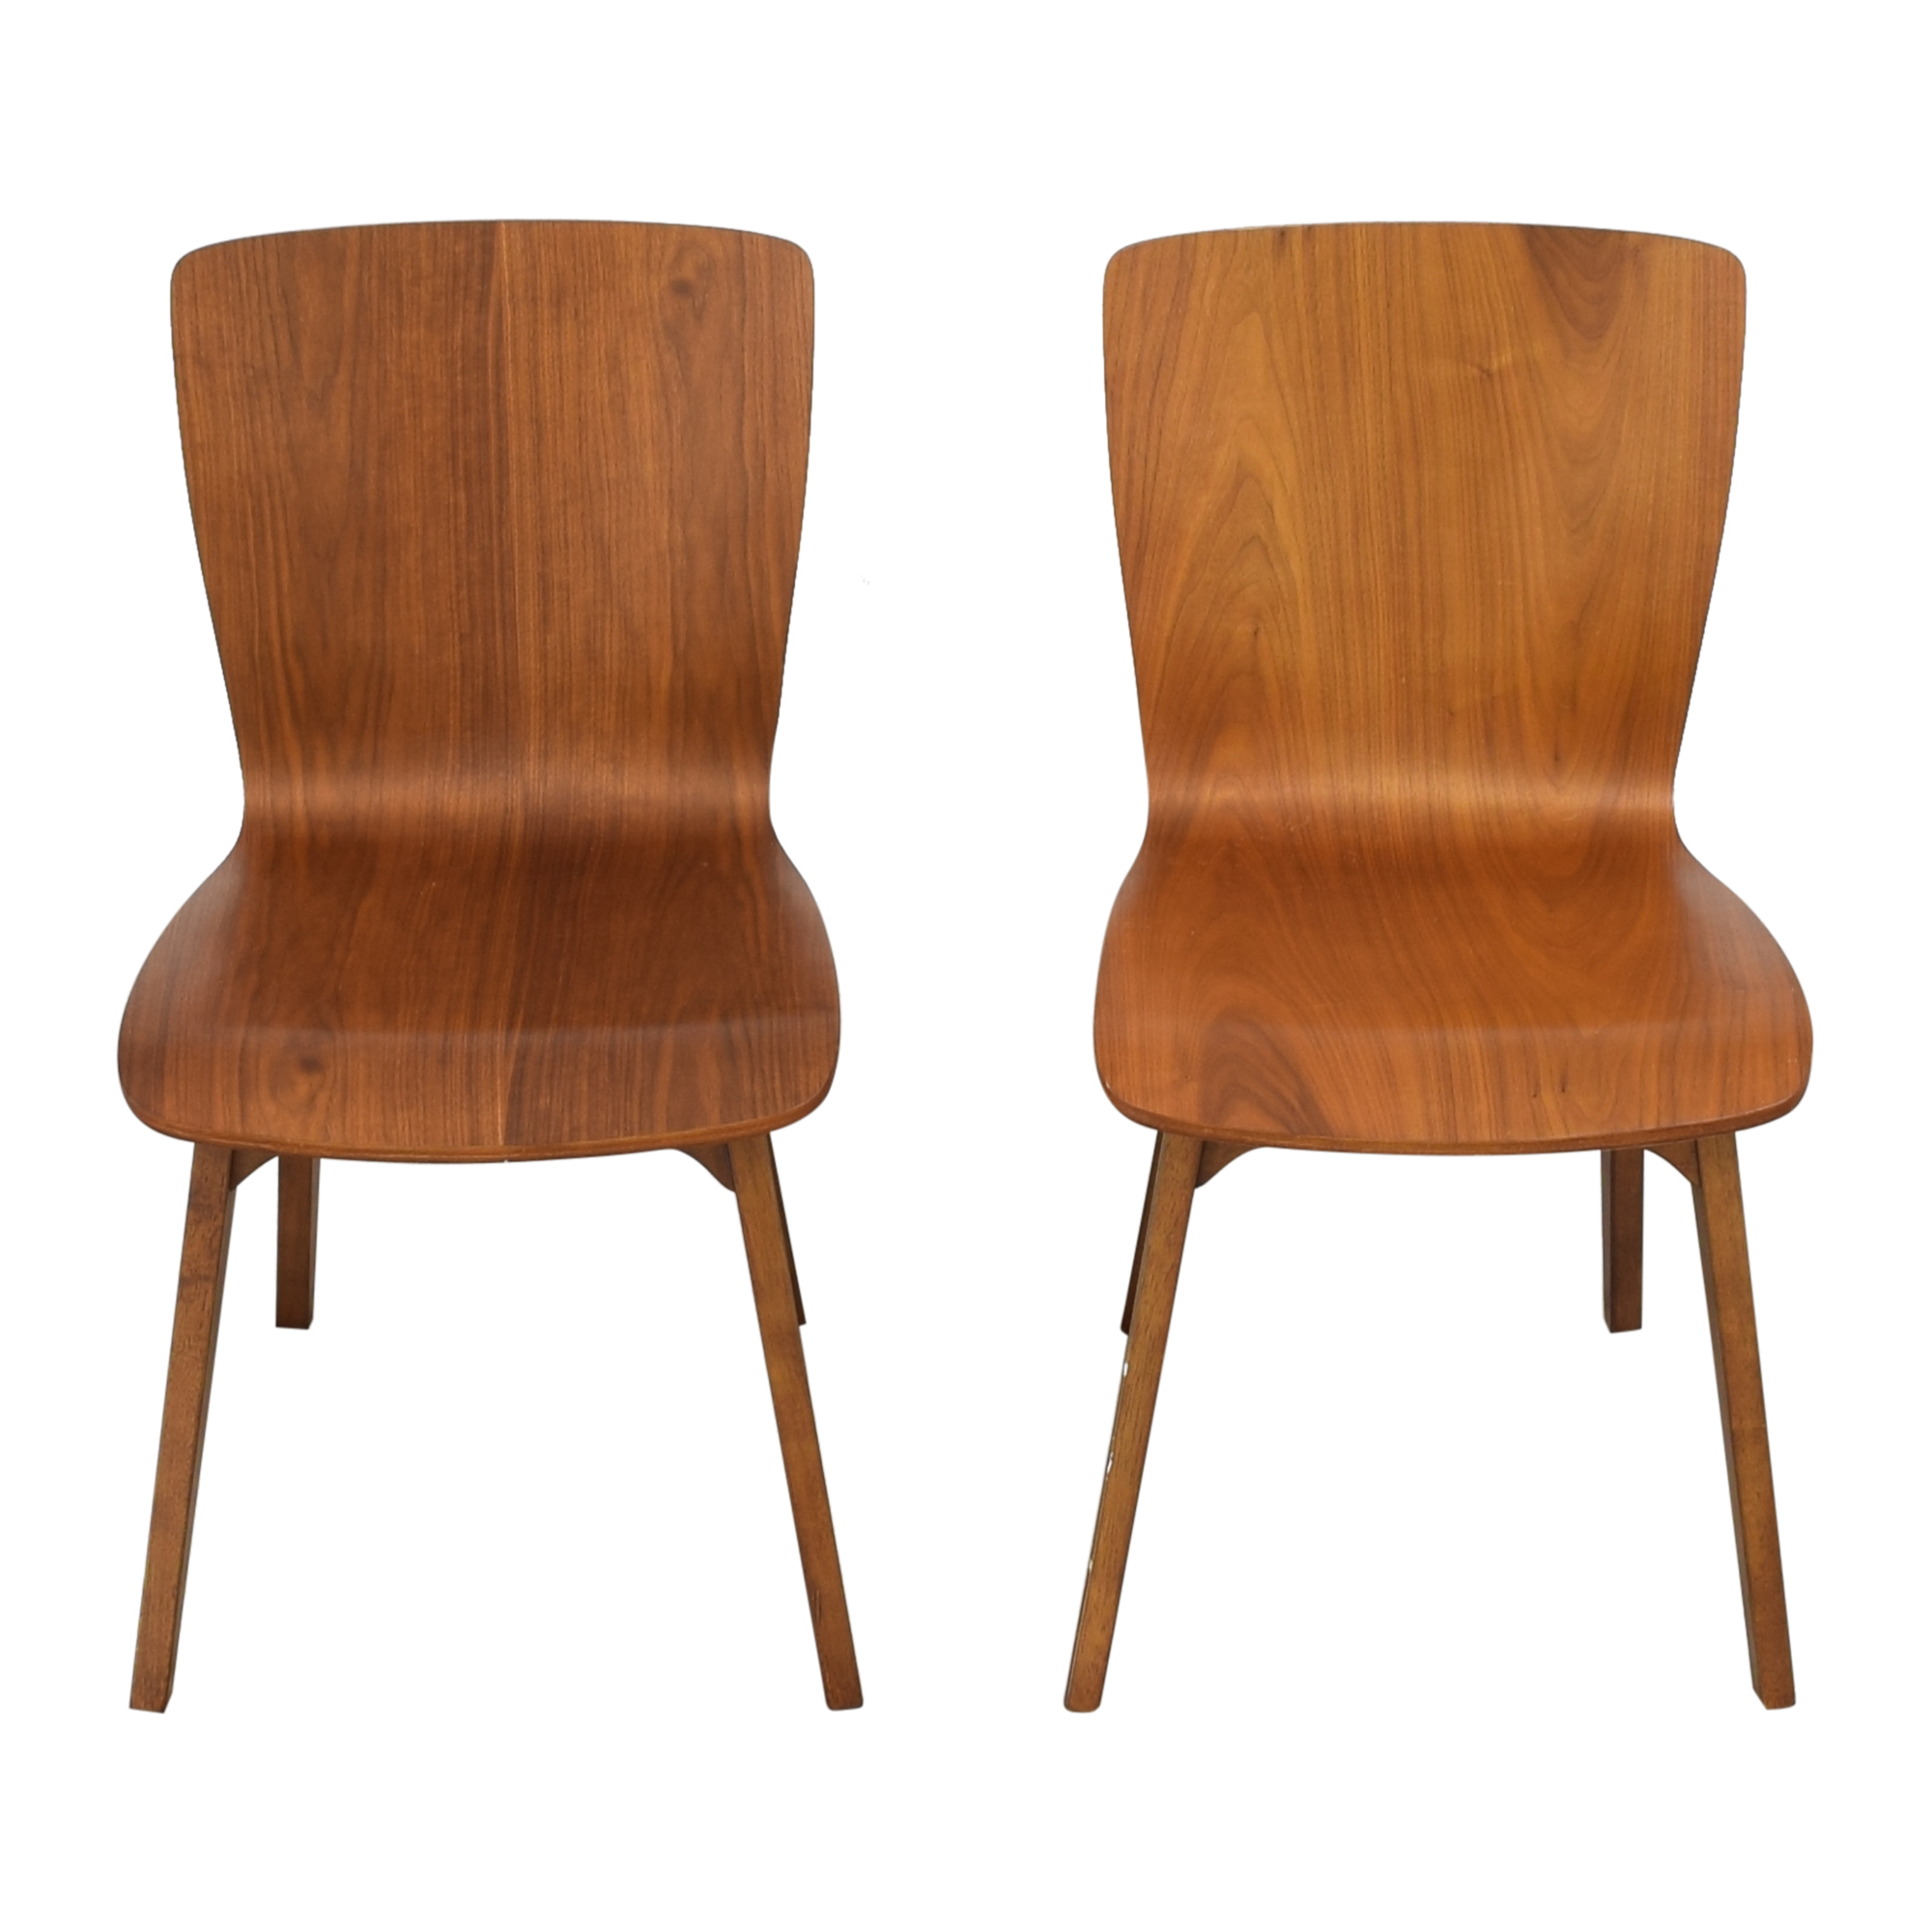 West Elm West Elm Crest Brentwood Chairs discount